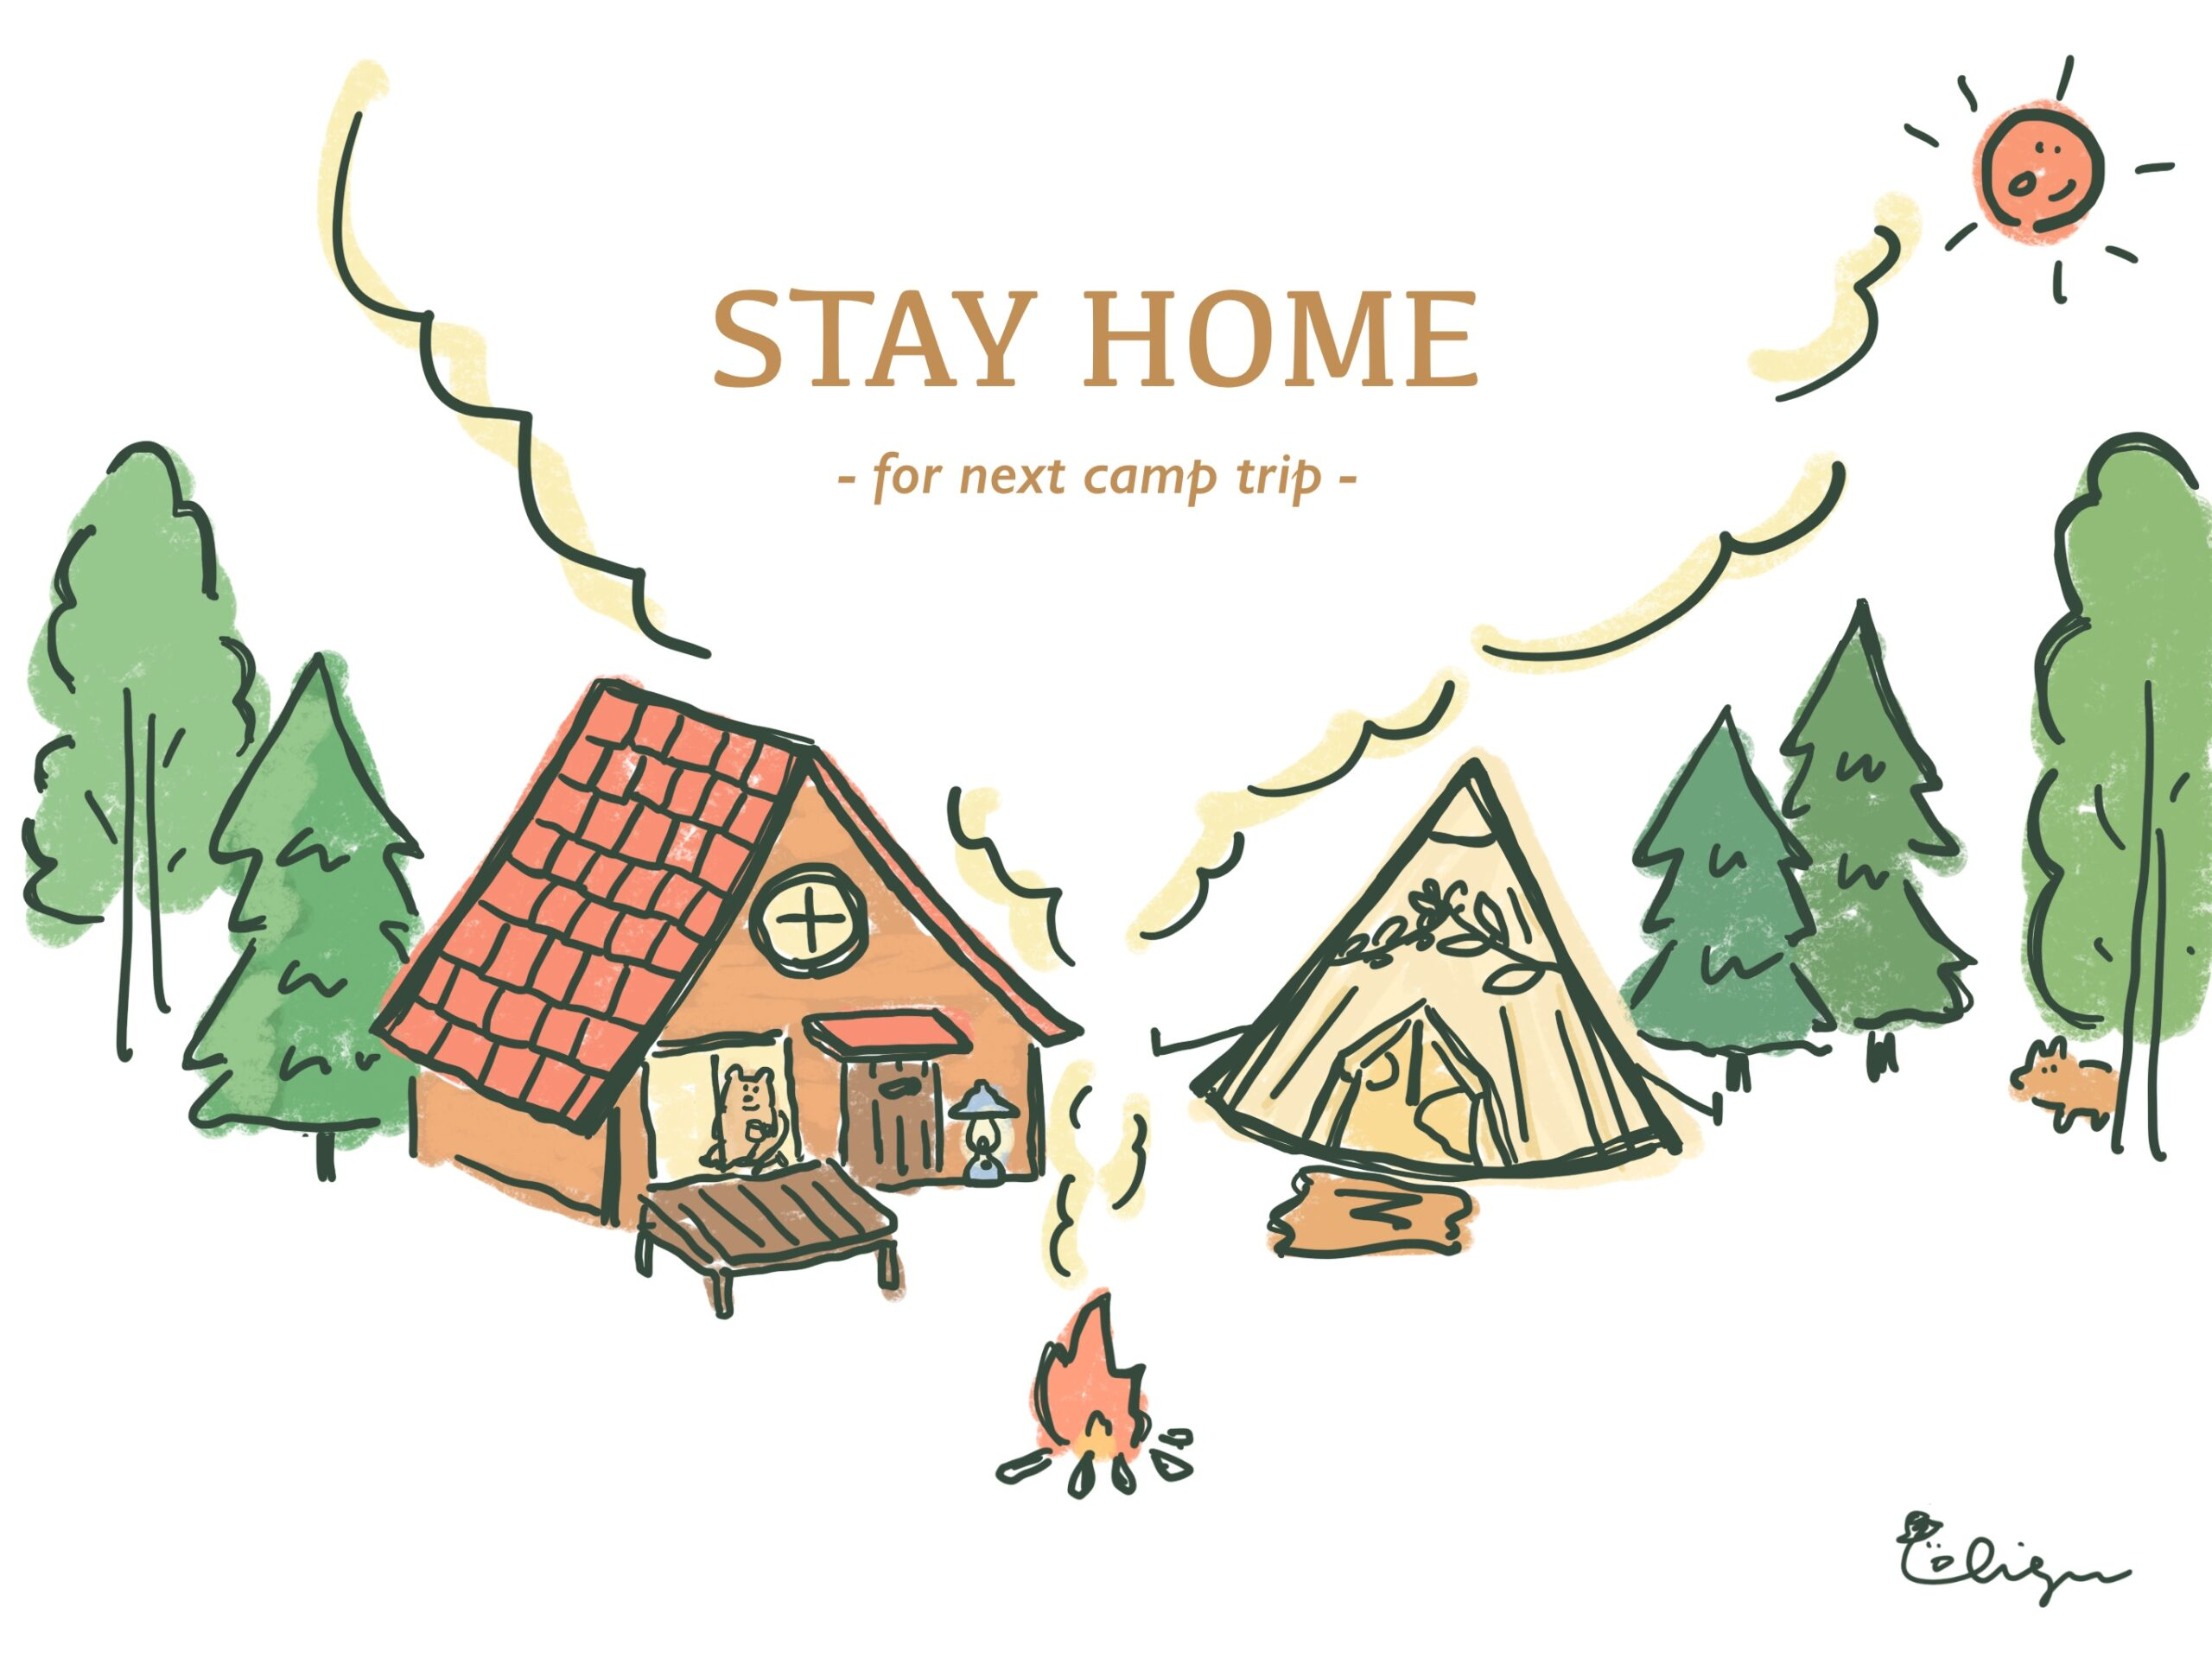 STAY HOME イラスト